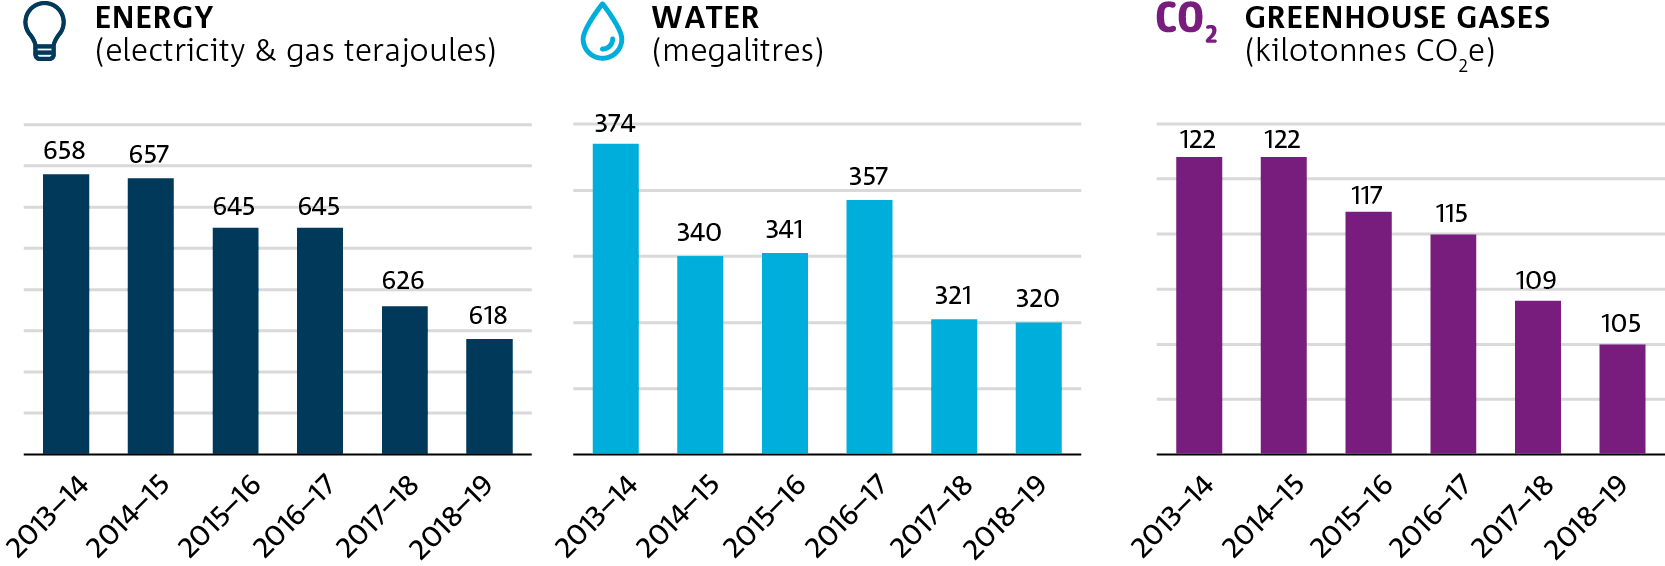 Bar charts showing csiro's energy and water consumption and green house gas emissions